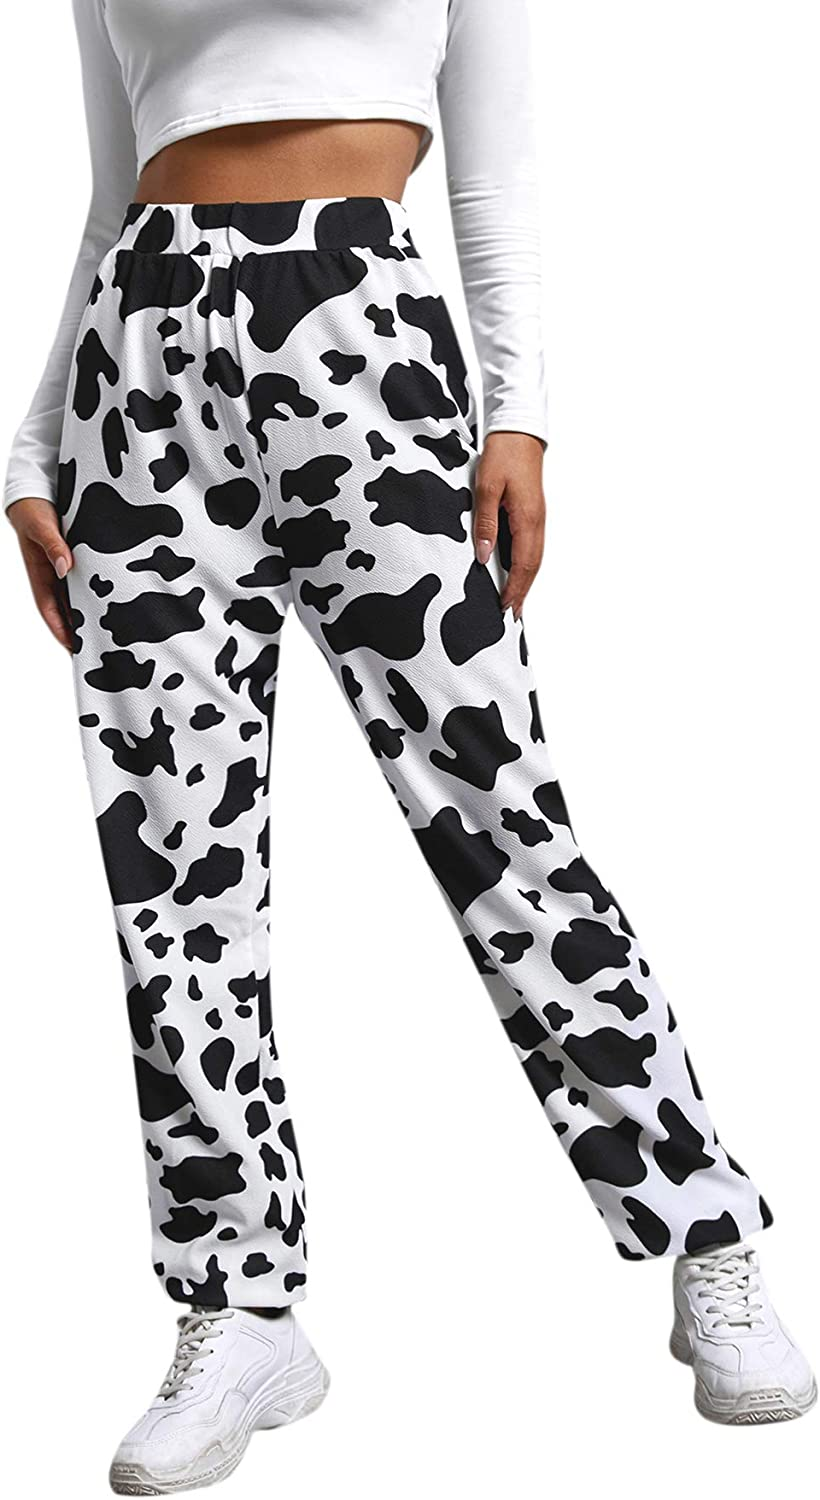 Shipping included WDIRARA Women's Cow Print Ranking TOP13 Elastic Long Sporty High Waist Joggers